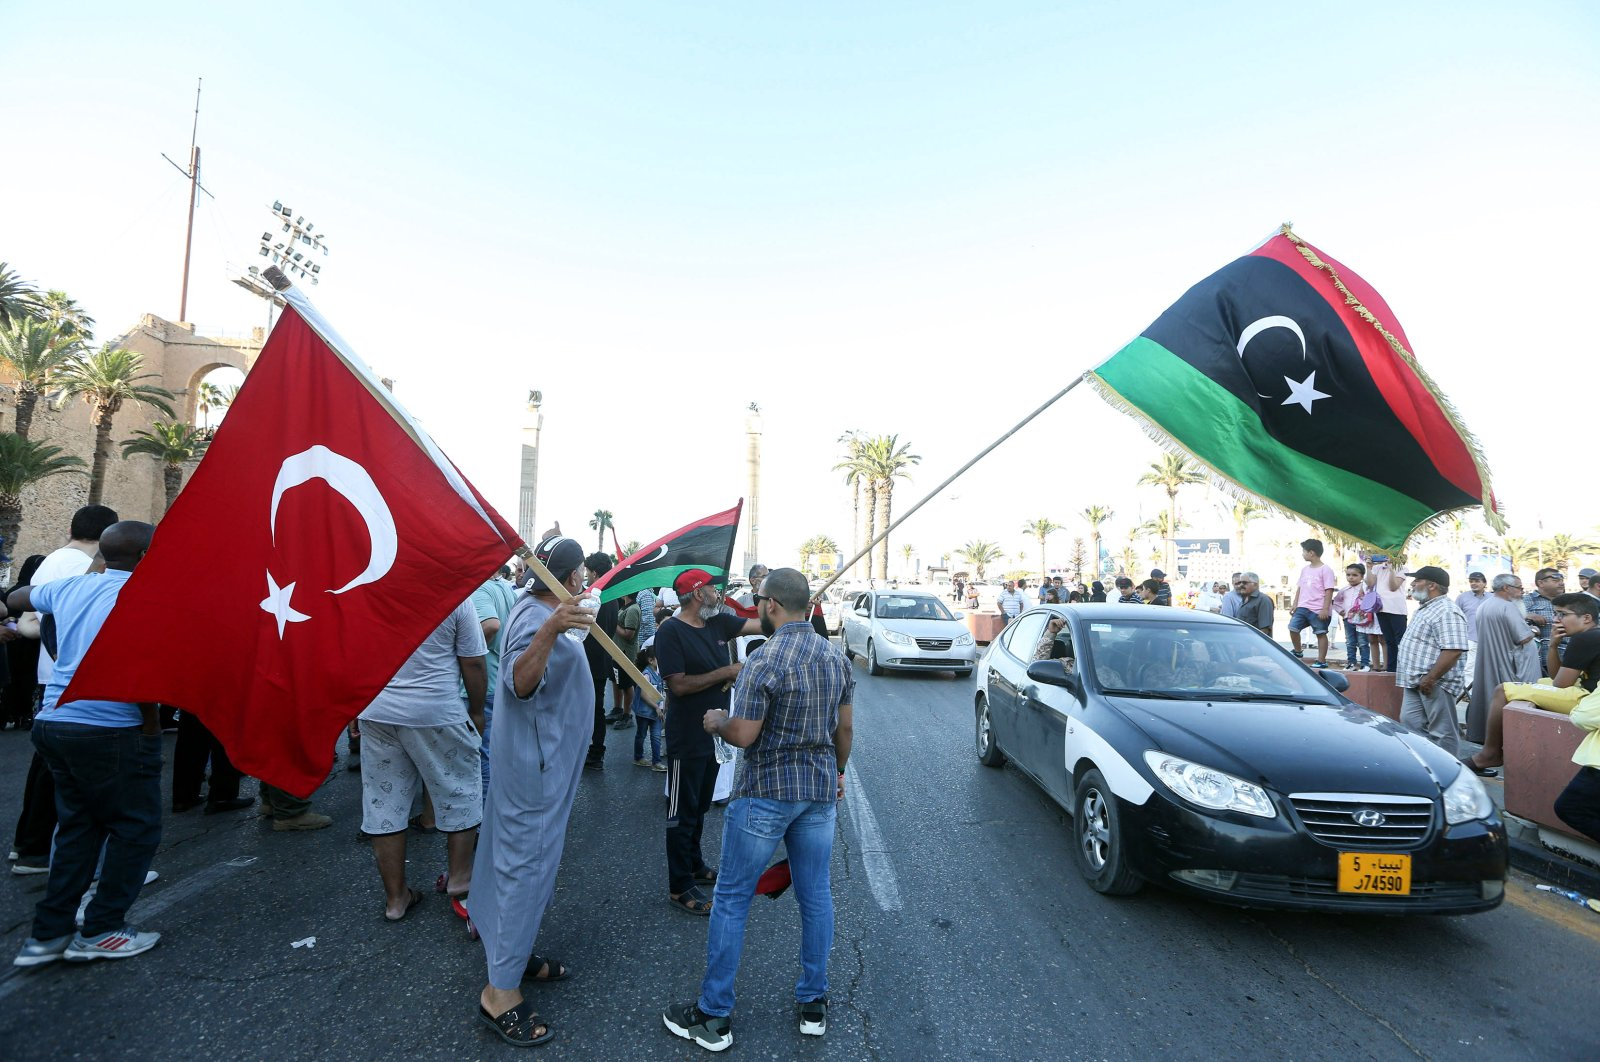 People wave flags of Libya and Turkey during a demonstration in the Martyrs' Square in the center of the Libyan capital Tripoli, currently held by the U.N.-recognized Government of National Accord (GNA), June 21, 2020. (AFP Photo)